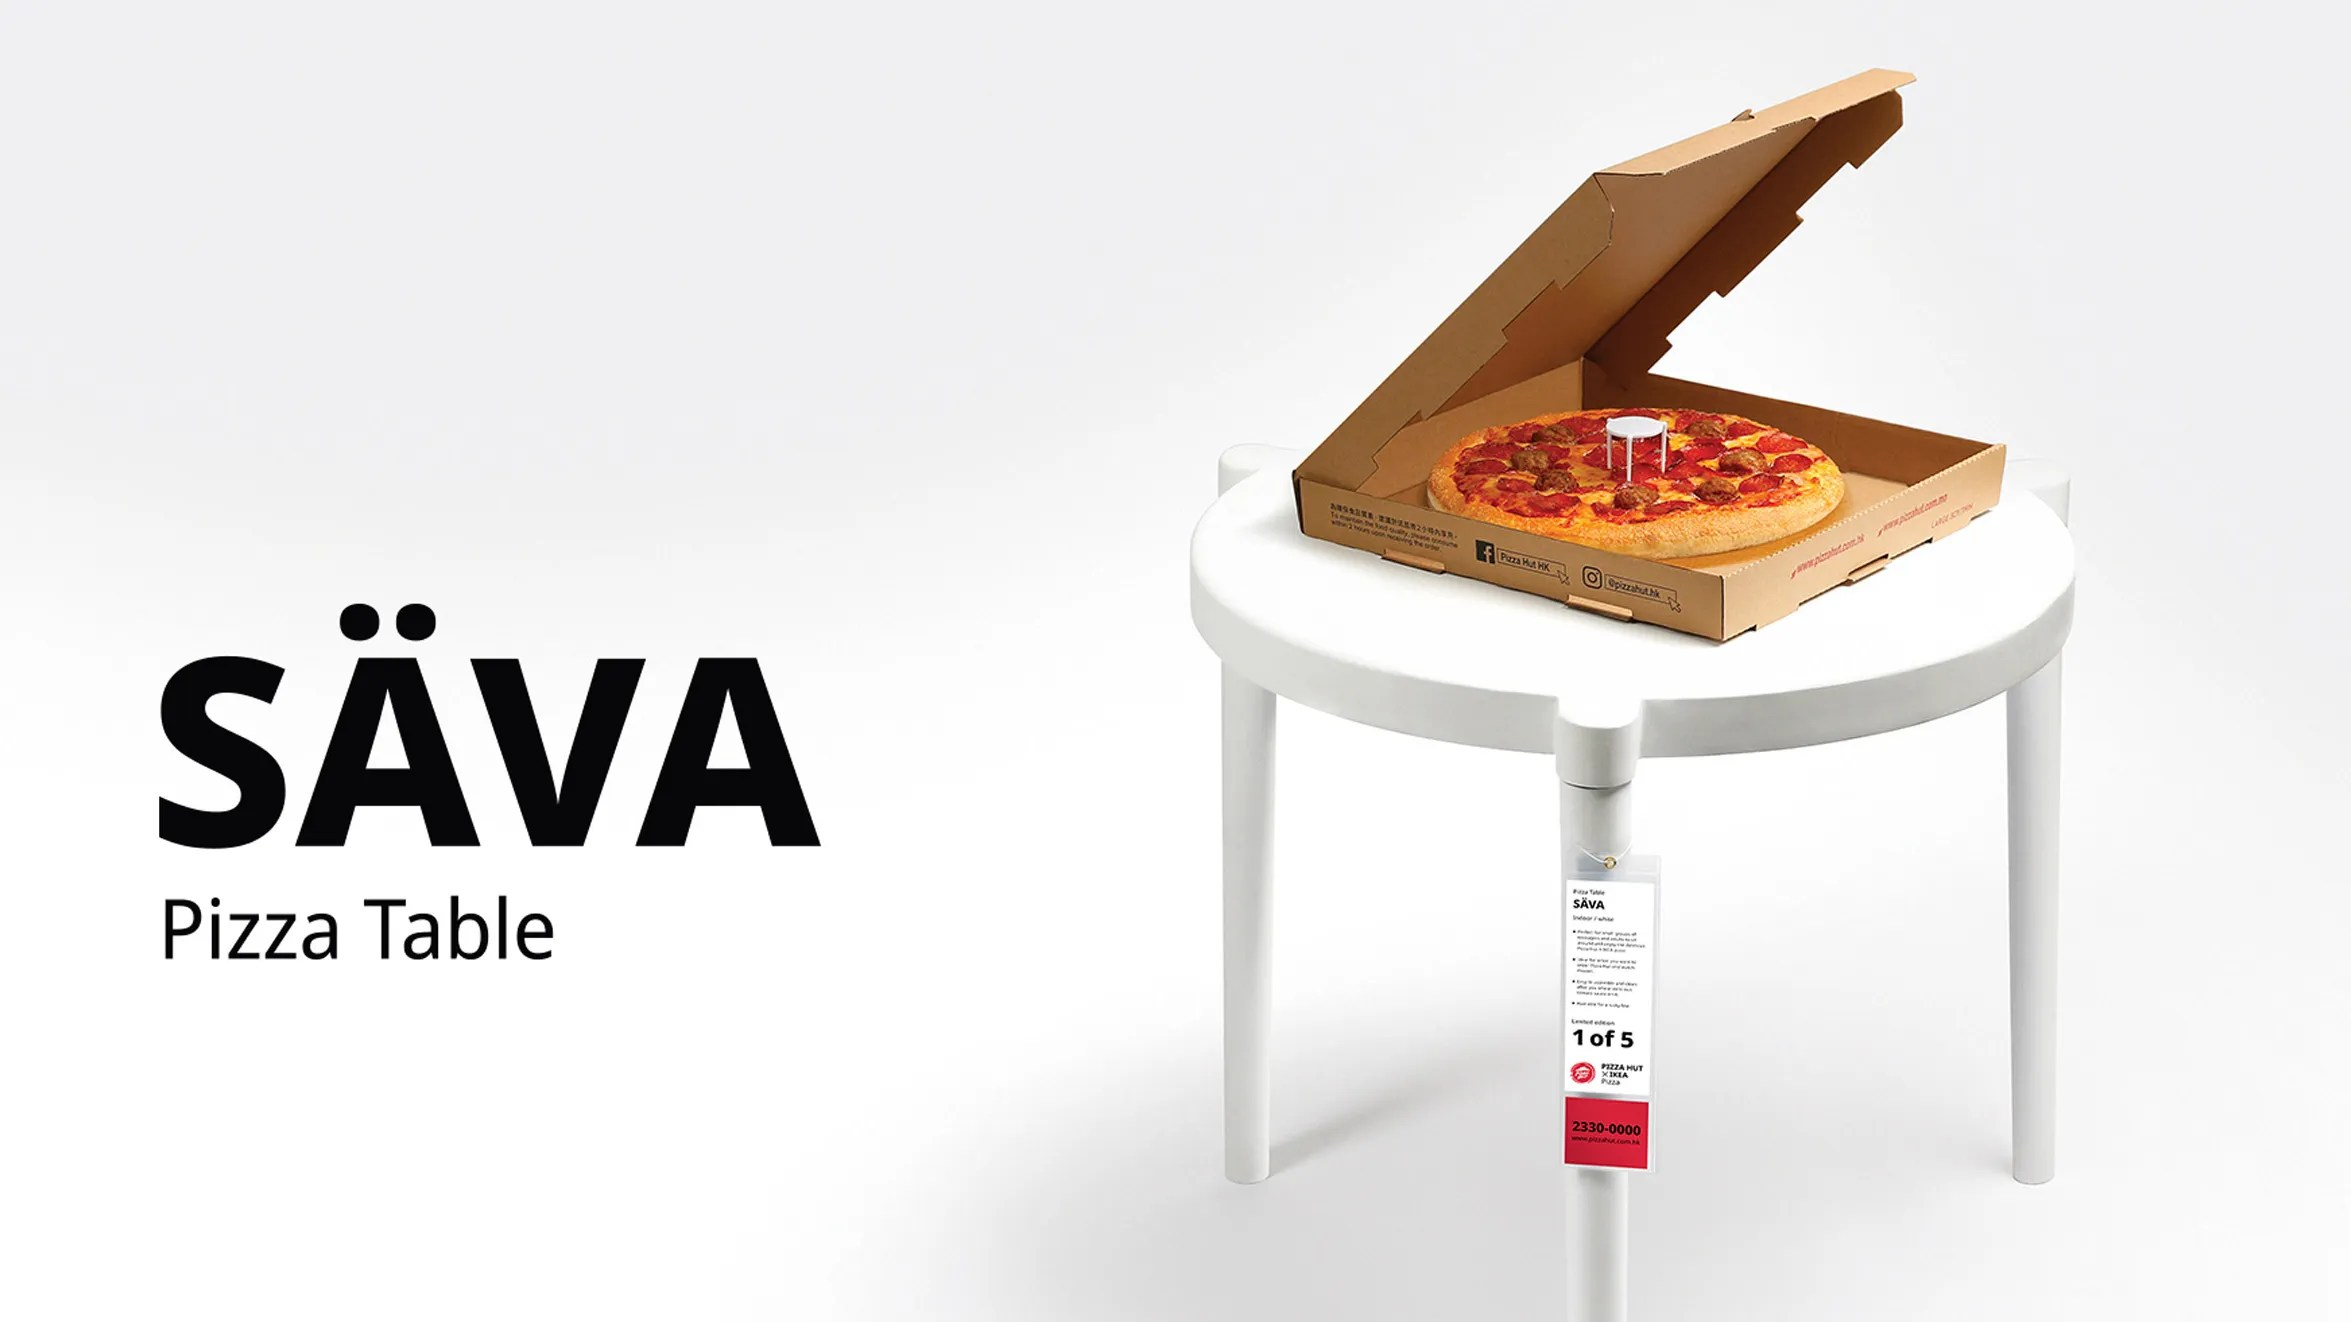 ikea takes inspiration from pizza hut